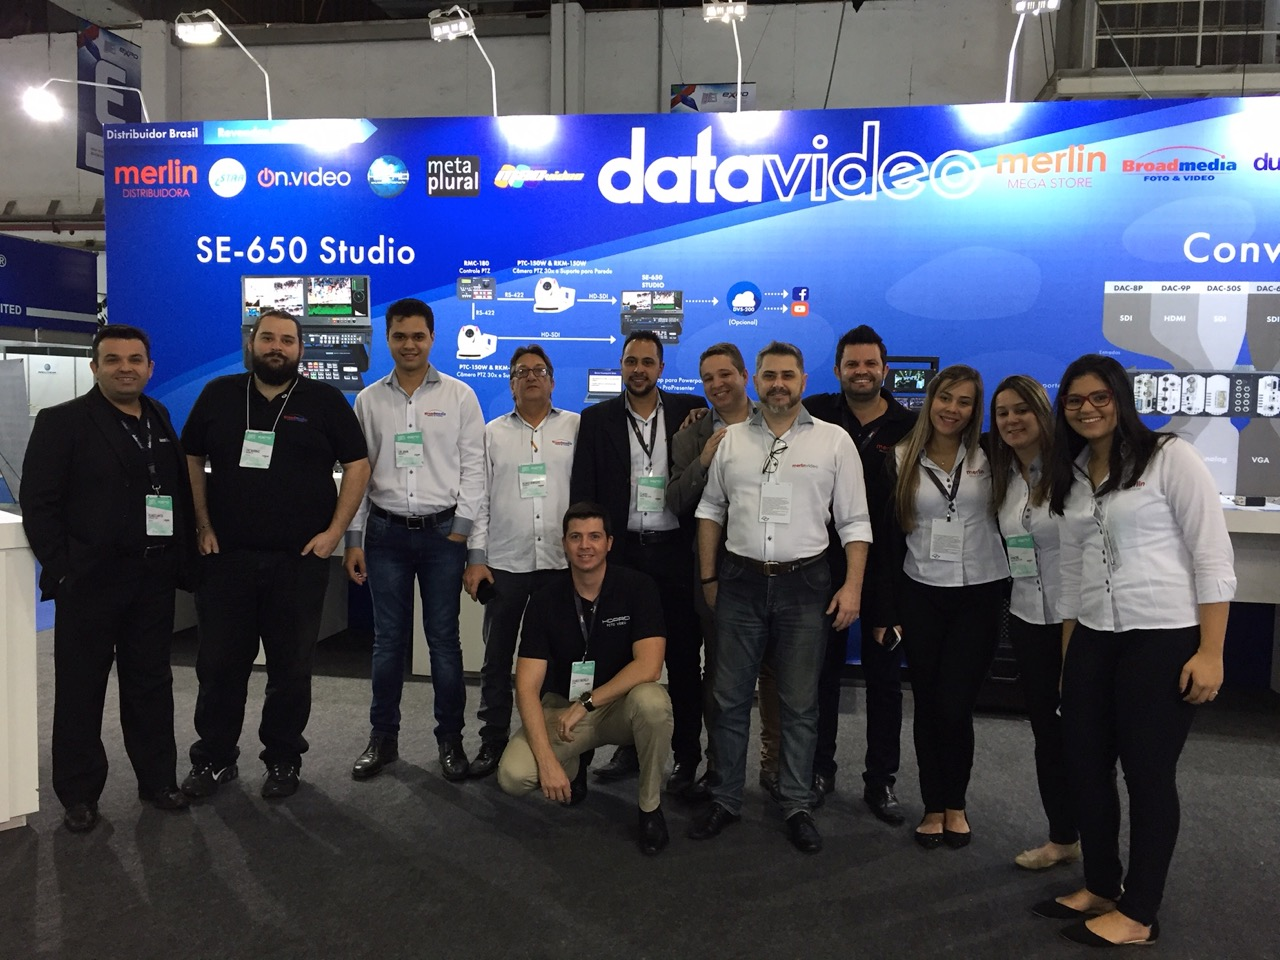 Thanks For Visiting Datavideo at SET 2017